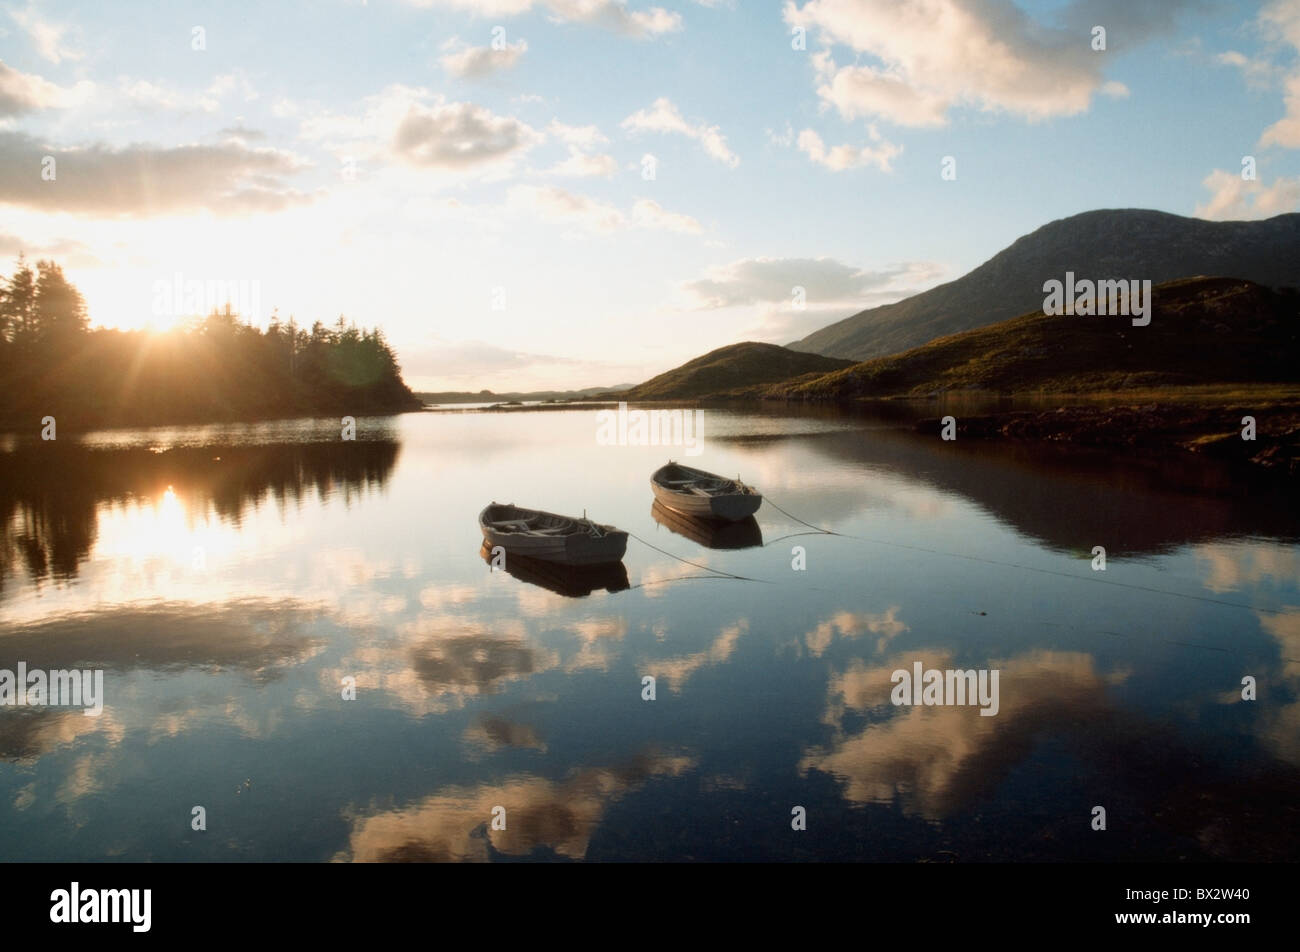 Boats On Ballynahinch Lake, Ballynahinch, County Galway, Ireland - Stock Image